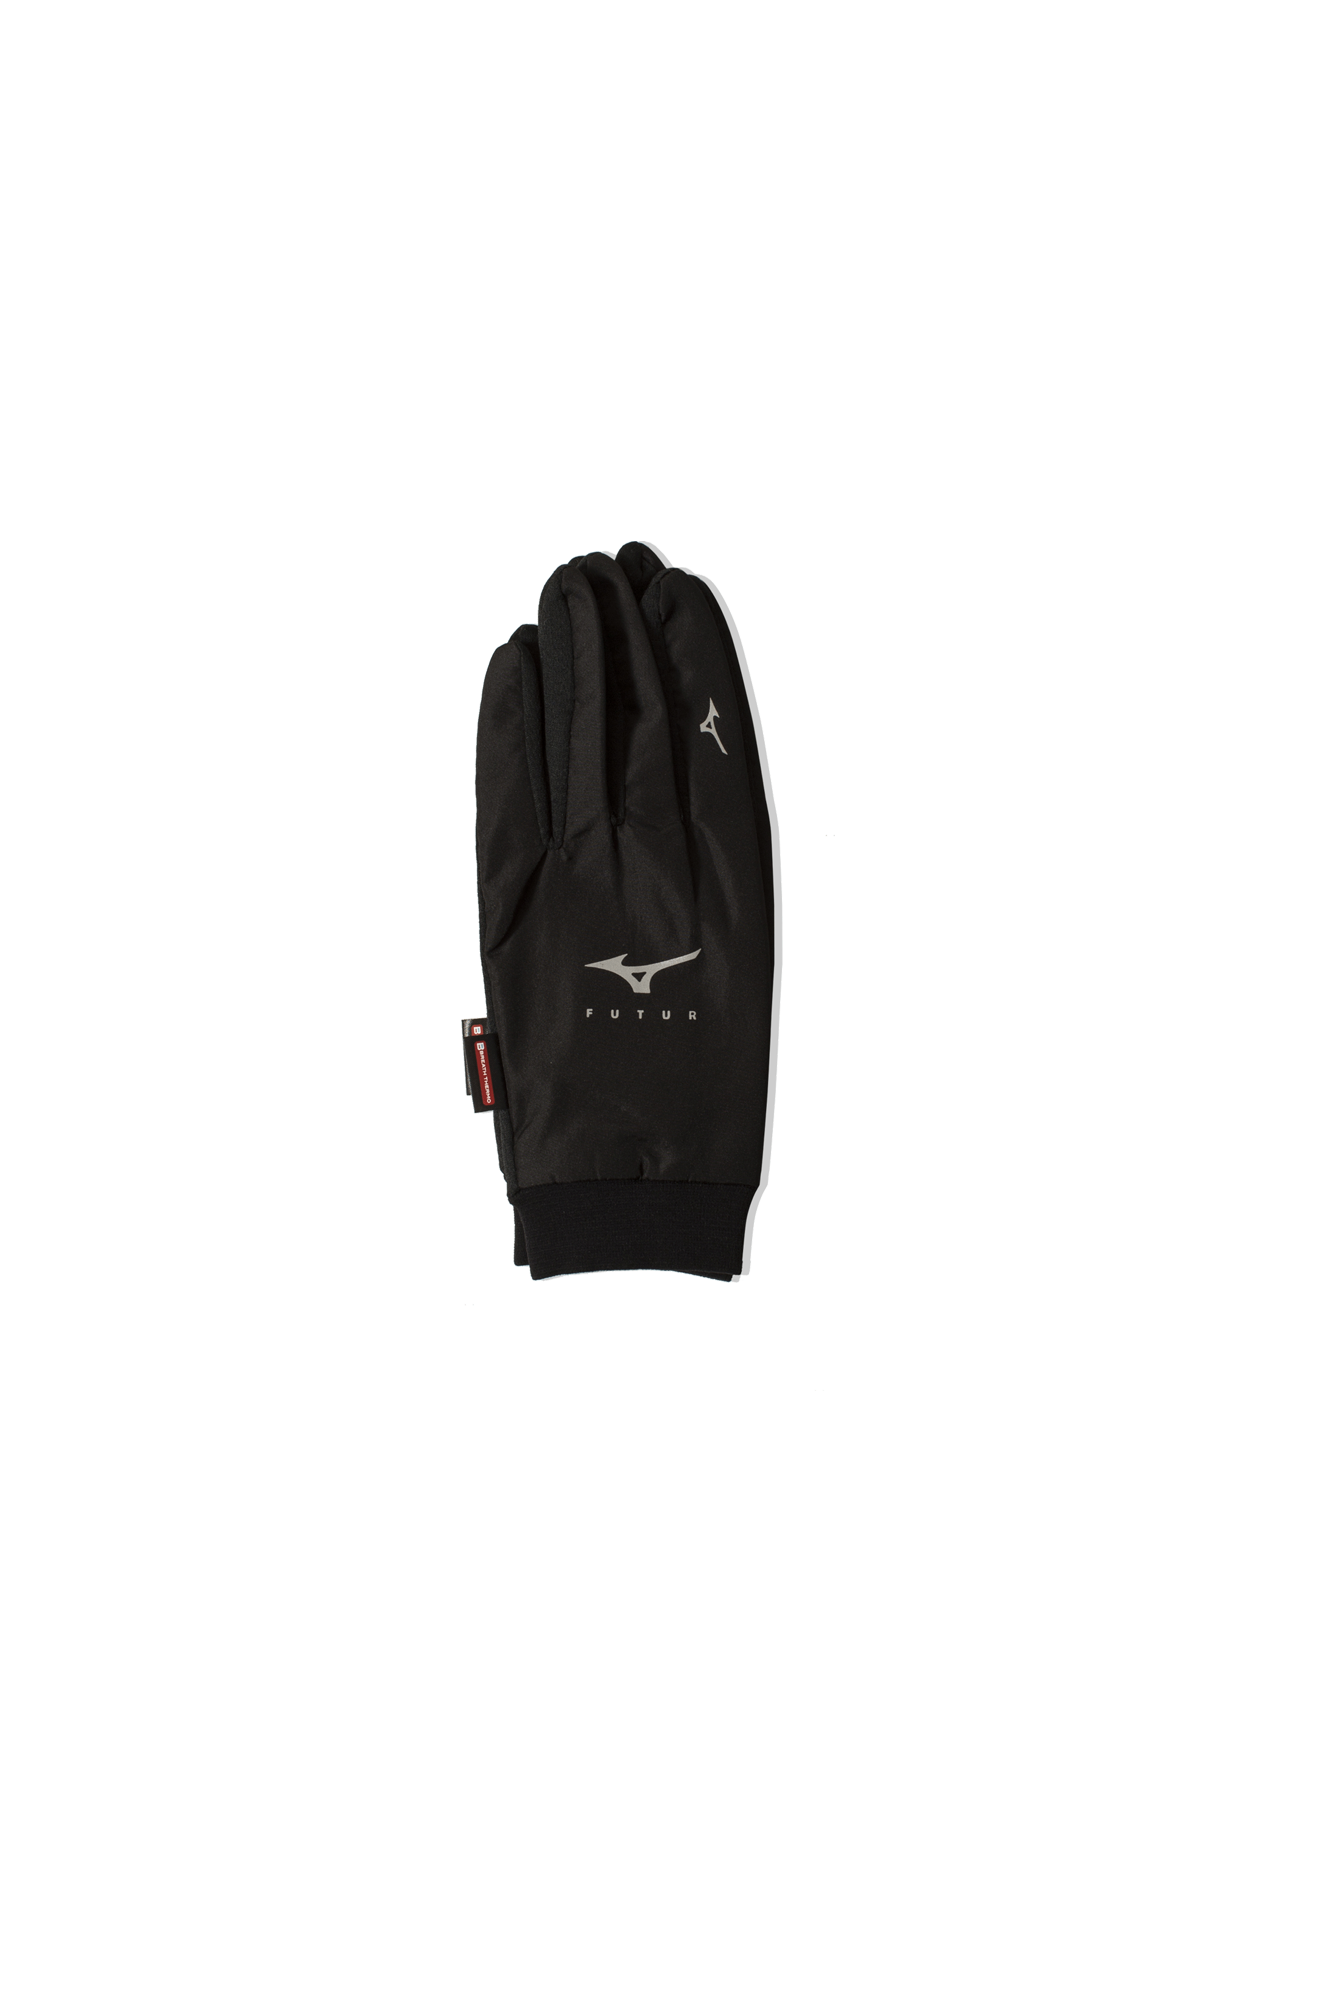 WIND GUARD GLOVE Black